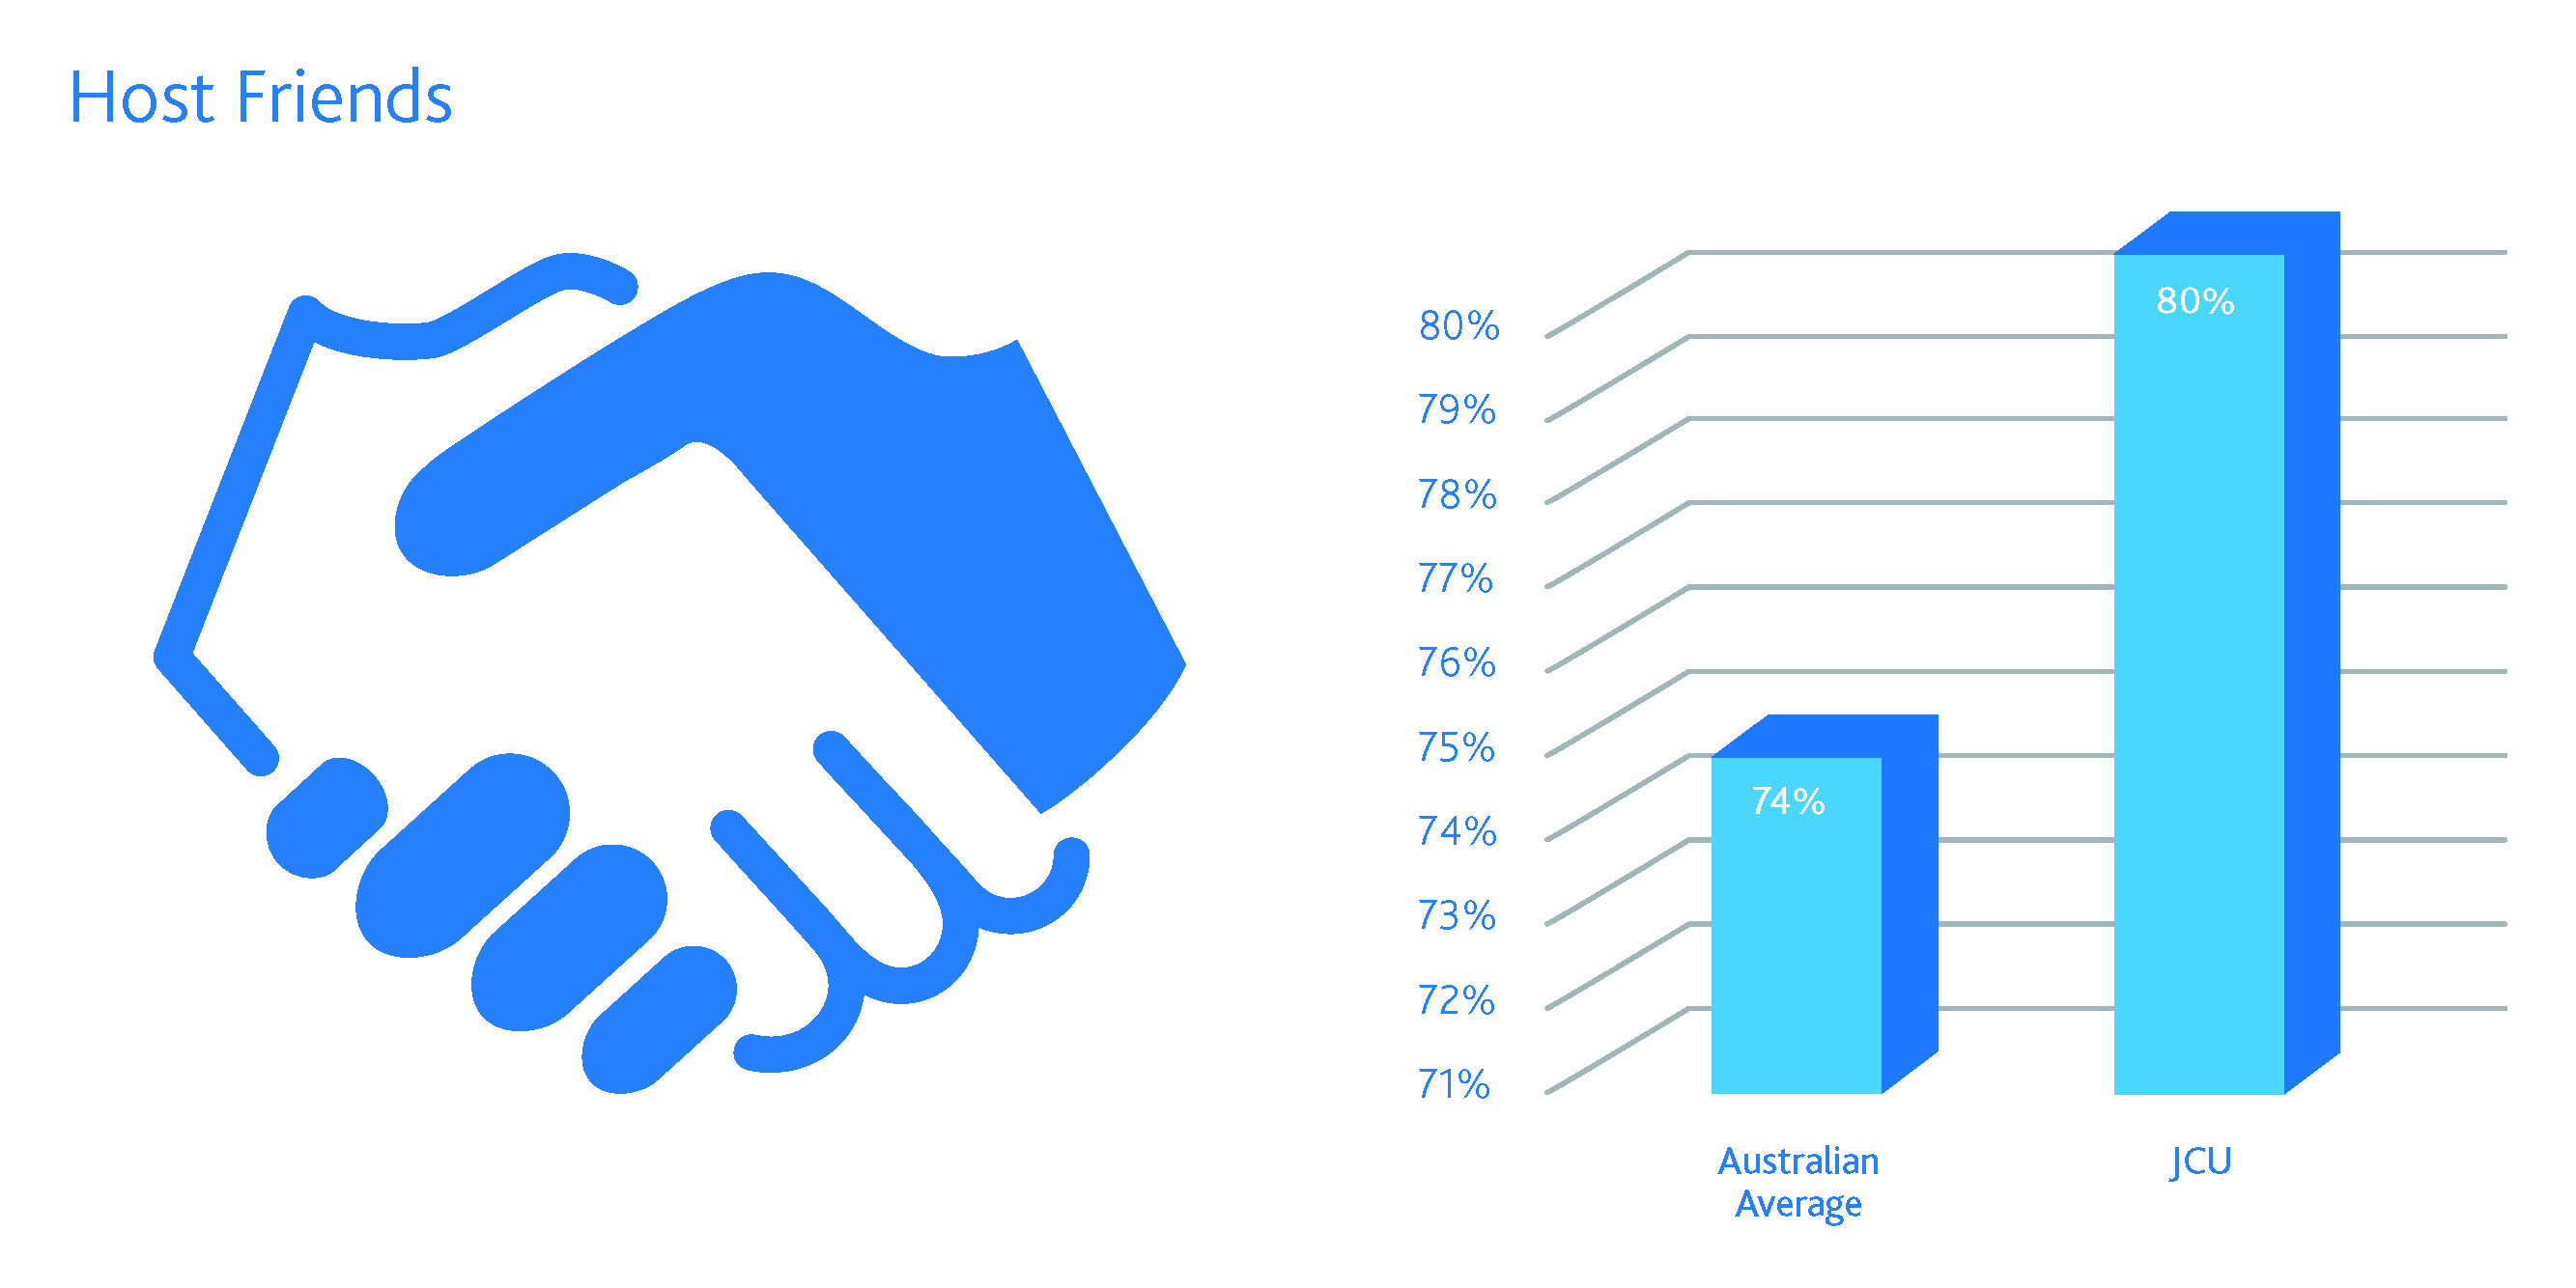 JCU student satisfaction with host friends